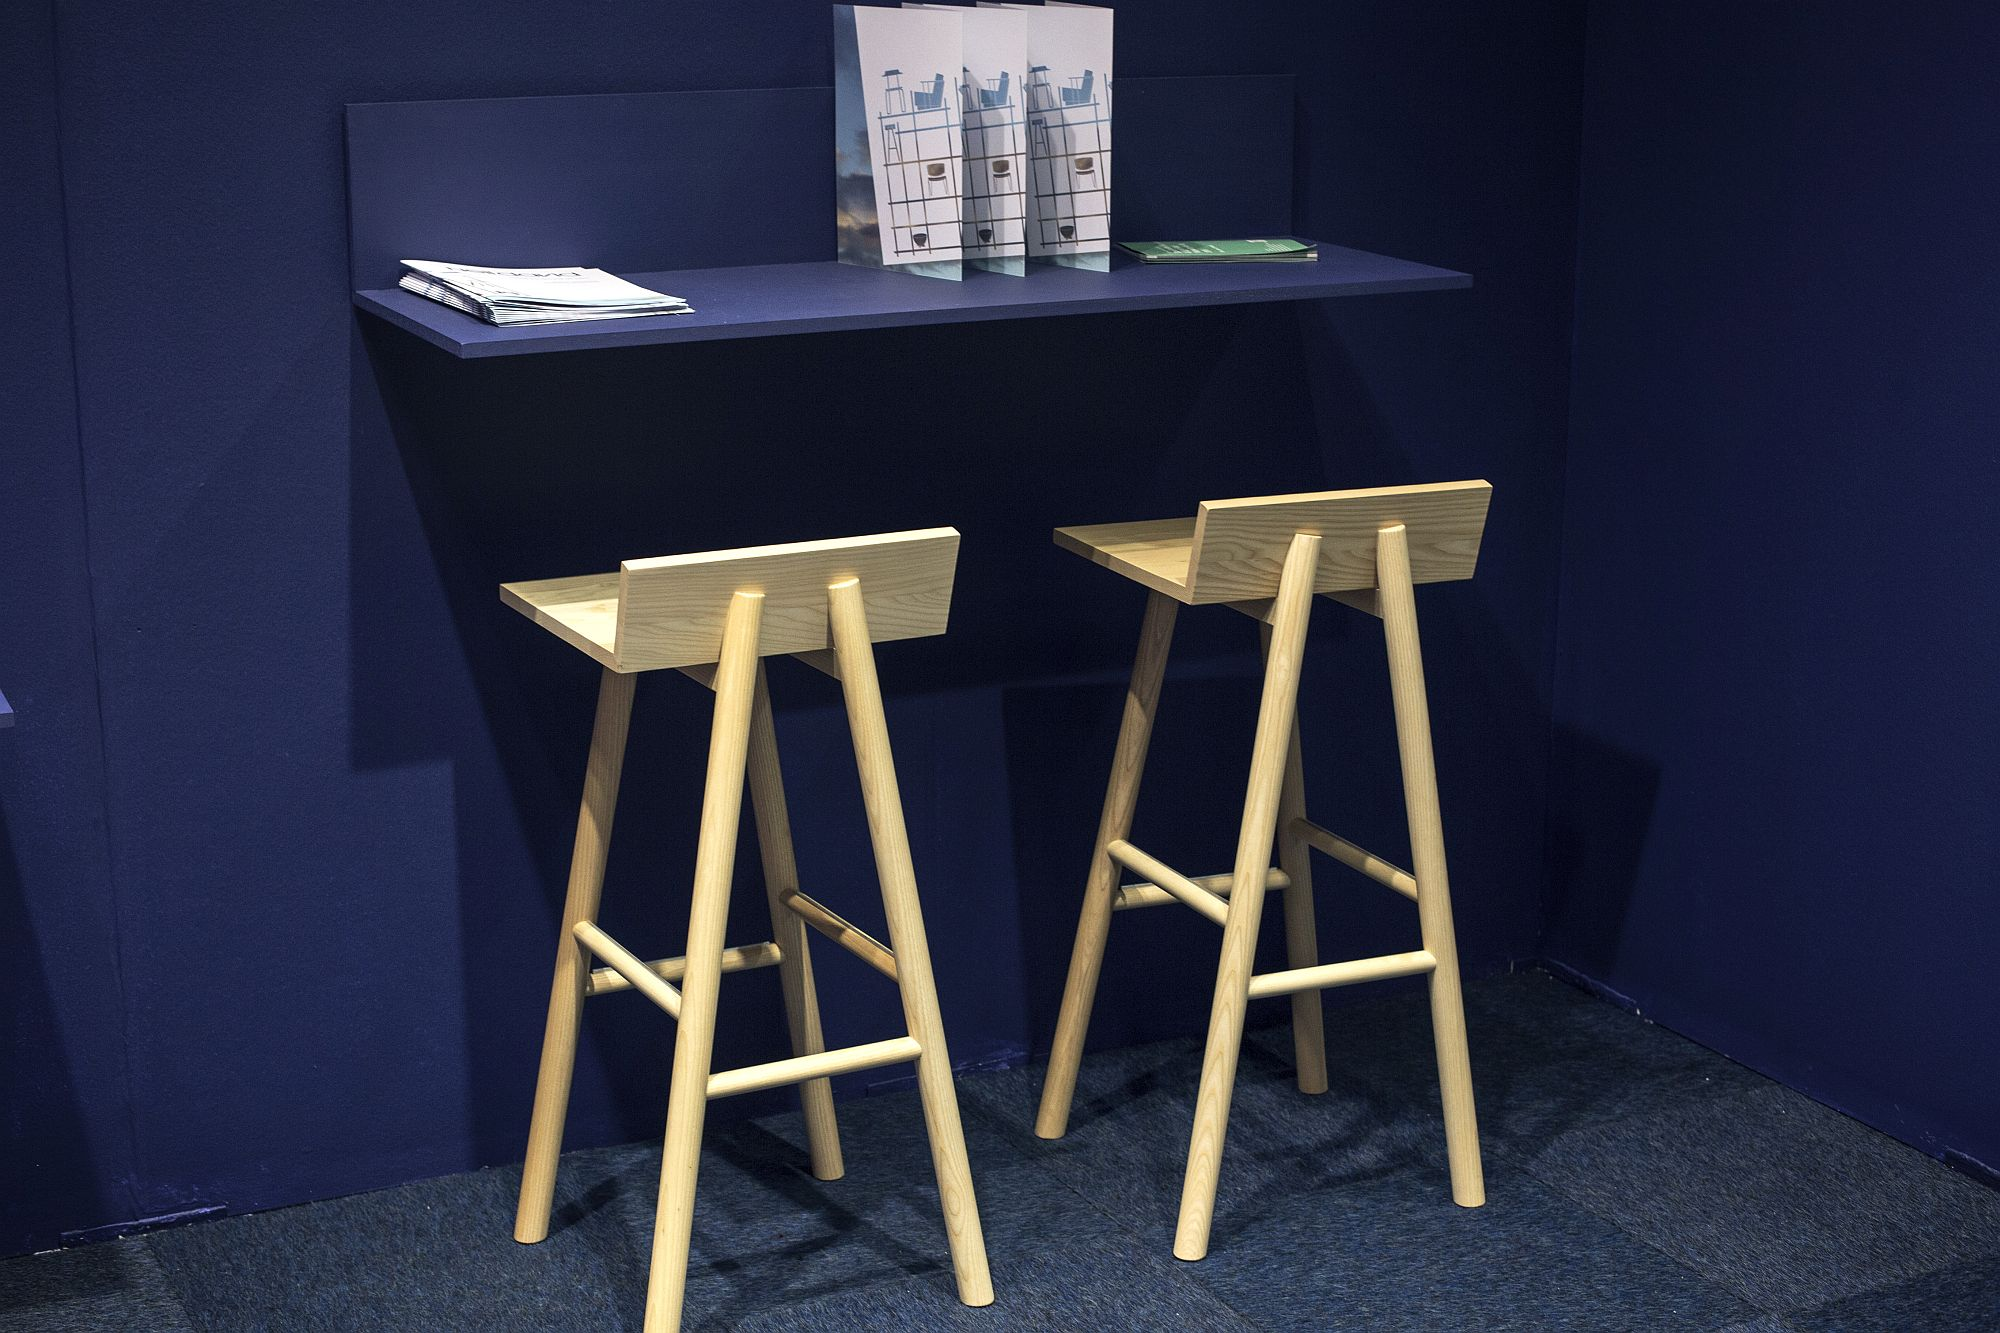 Simple-and-minimal-home-workstation-idea-with-wooden-chairs